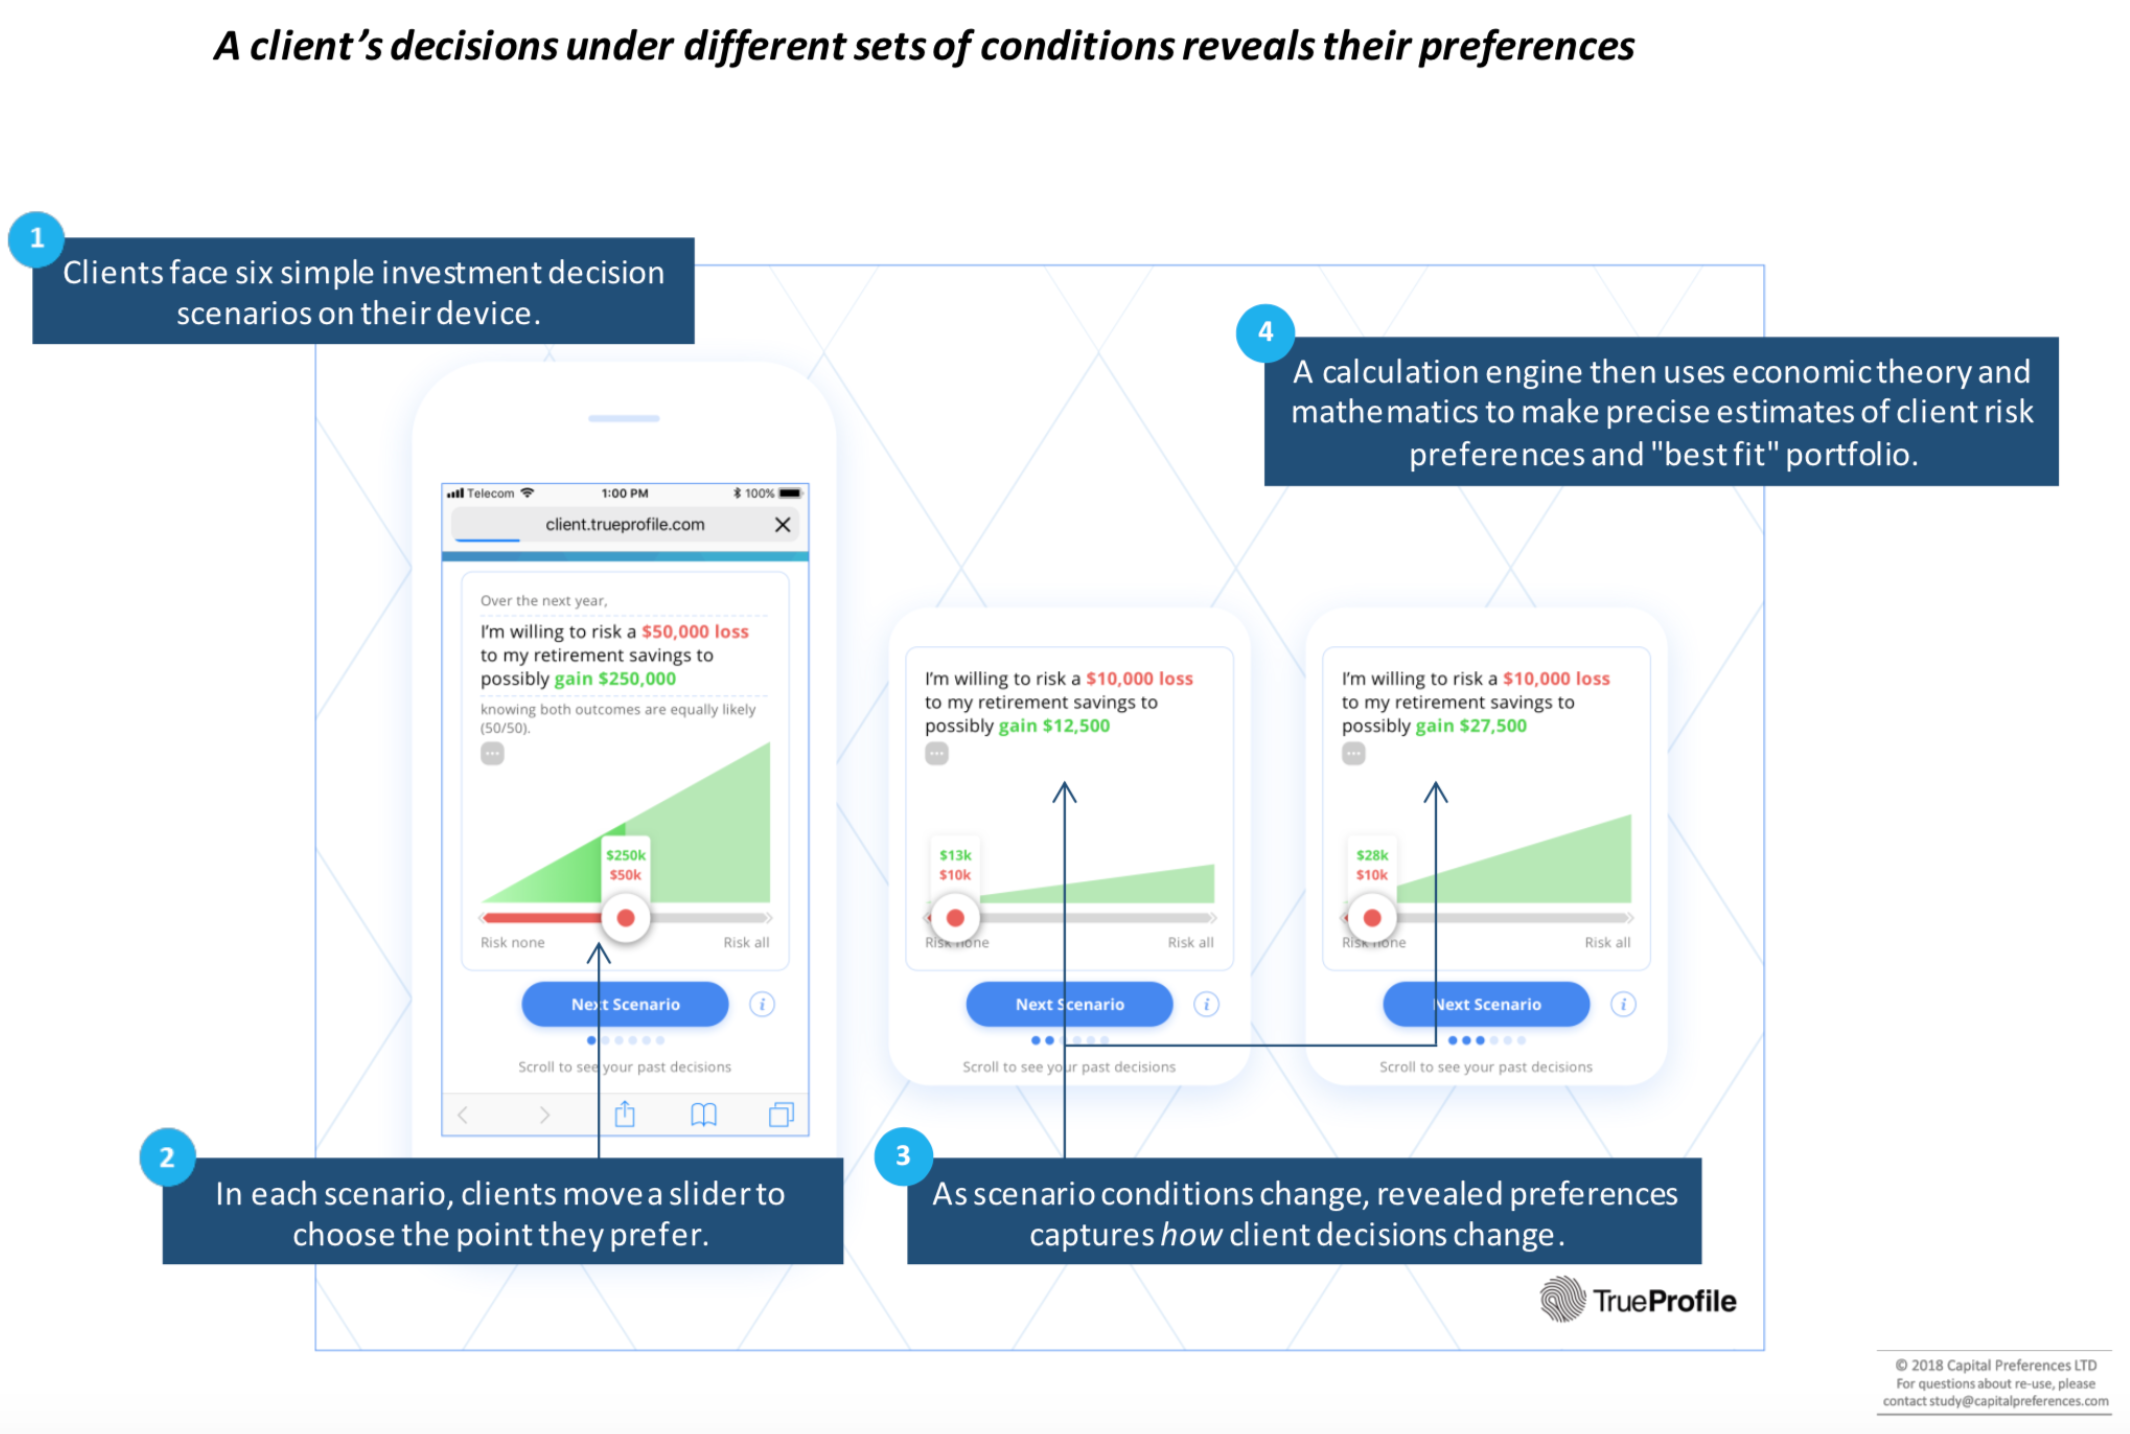 A client's decisions under different sets of conditions reveals their preferences